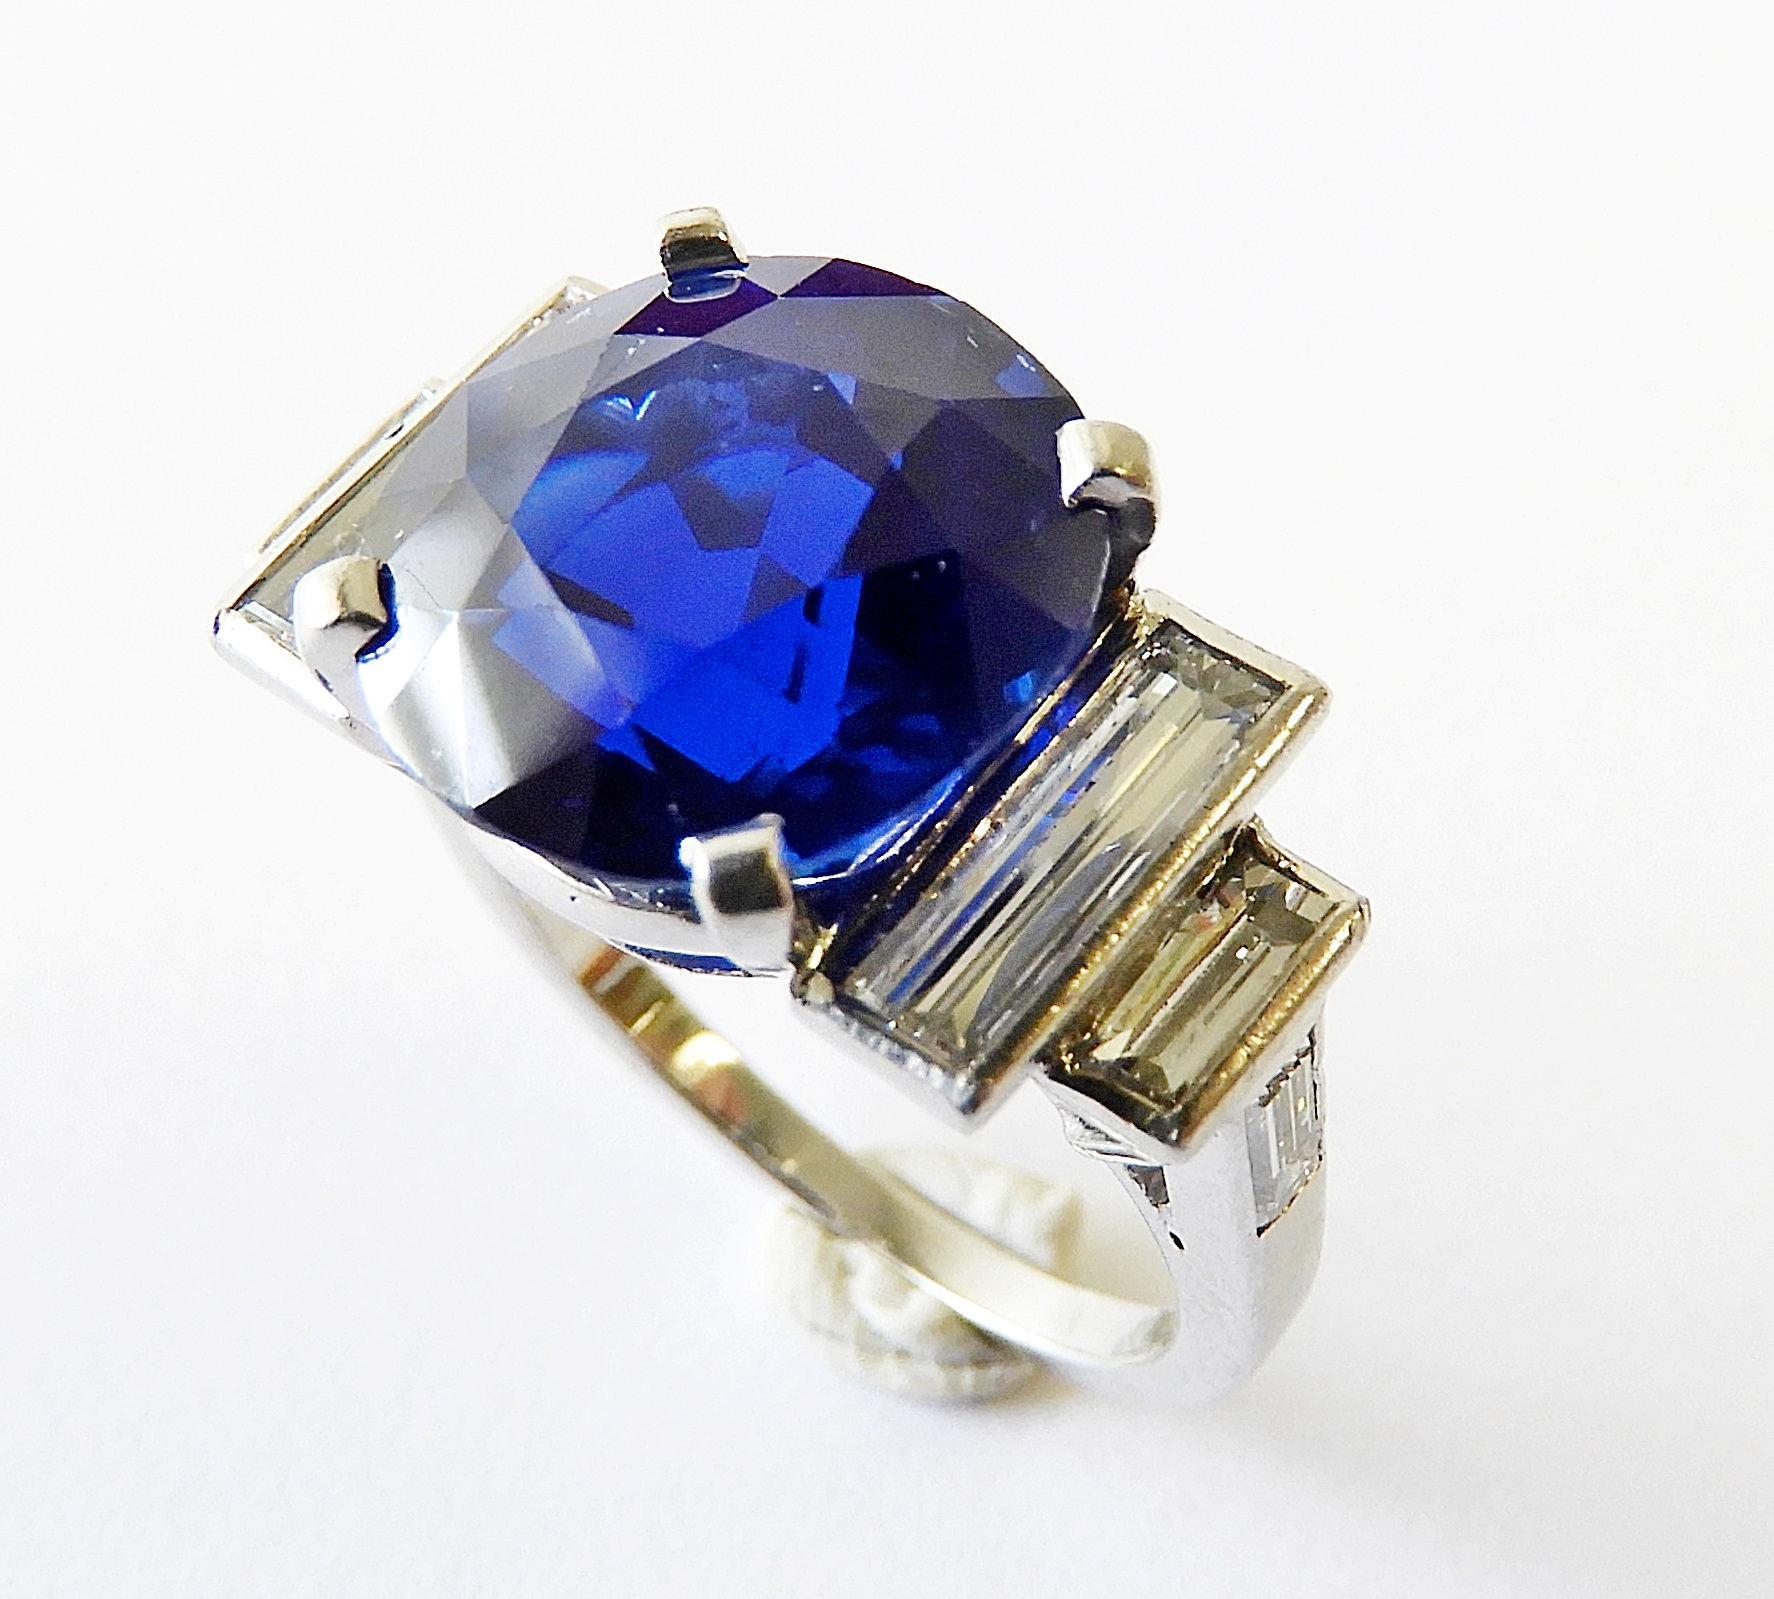 1. Lot 108. Record Breaking 6-carat Kashmir Sapphire And Diamond Ring From The Estate Of Rosalie Coe Weir. Sold For $377,000 ($100,000-150,000)